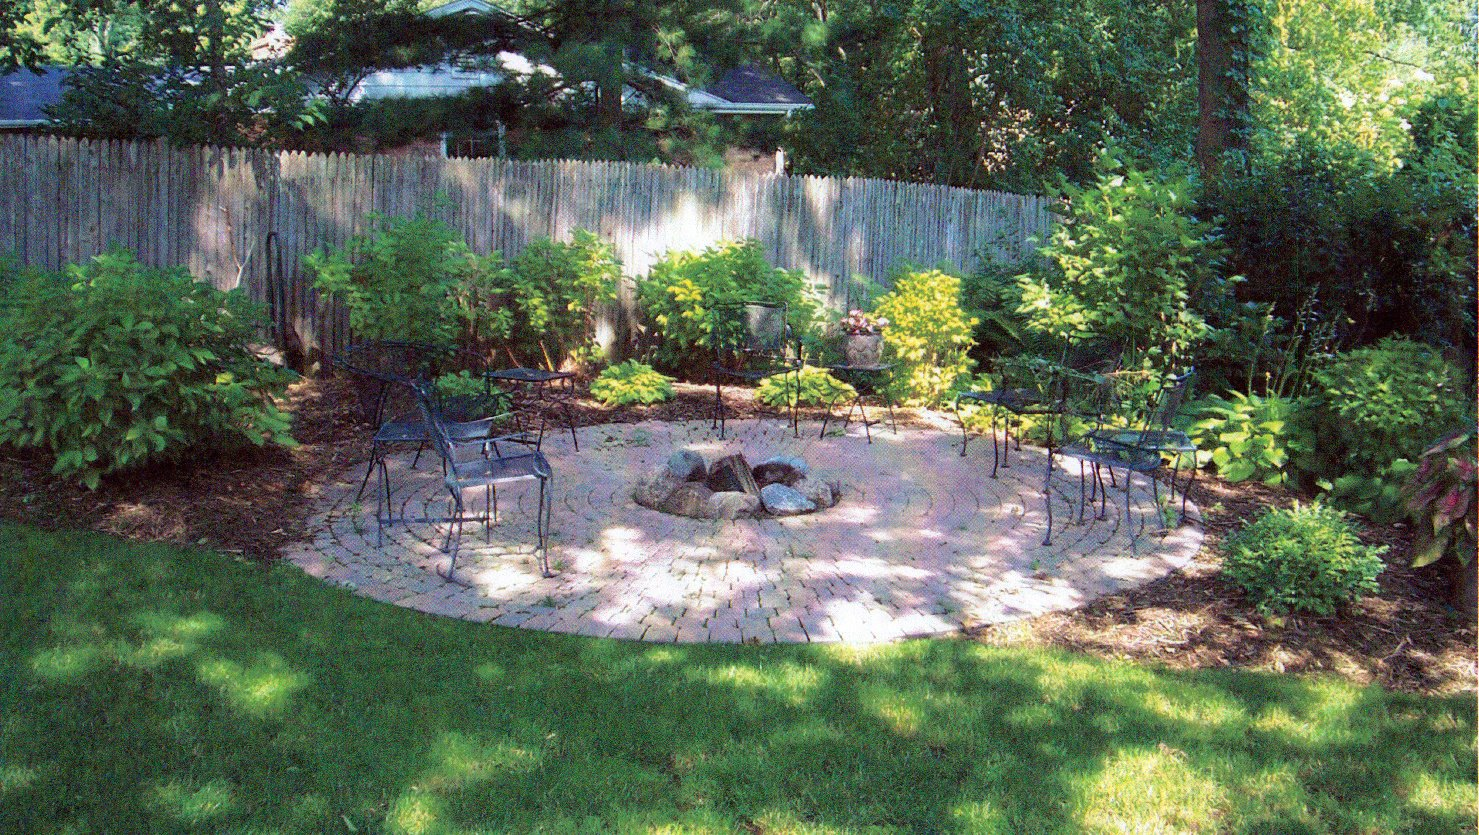 backyard landscaping ideas - Backyard Landscaping Design Ideas